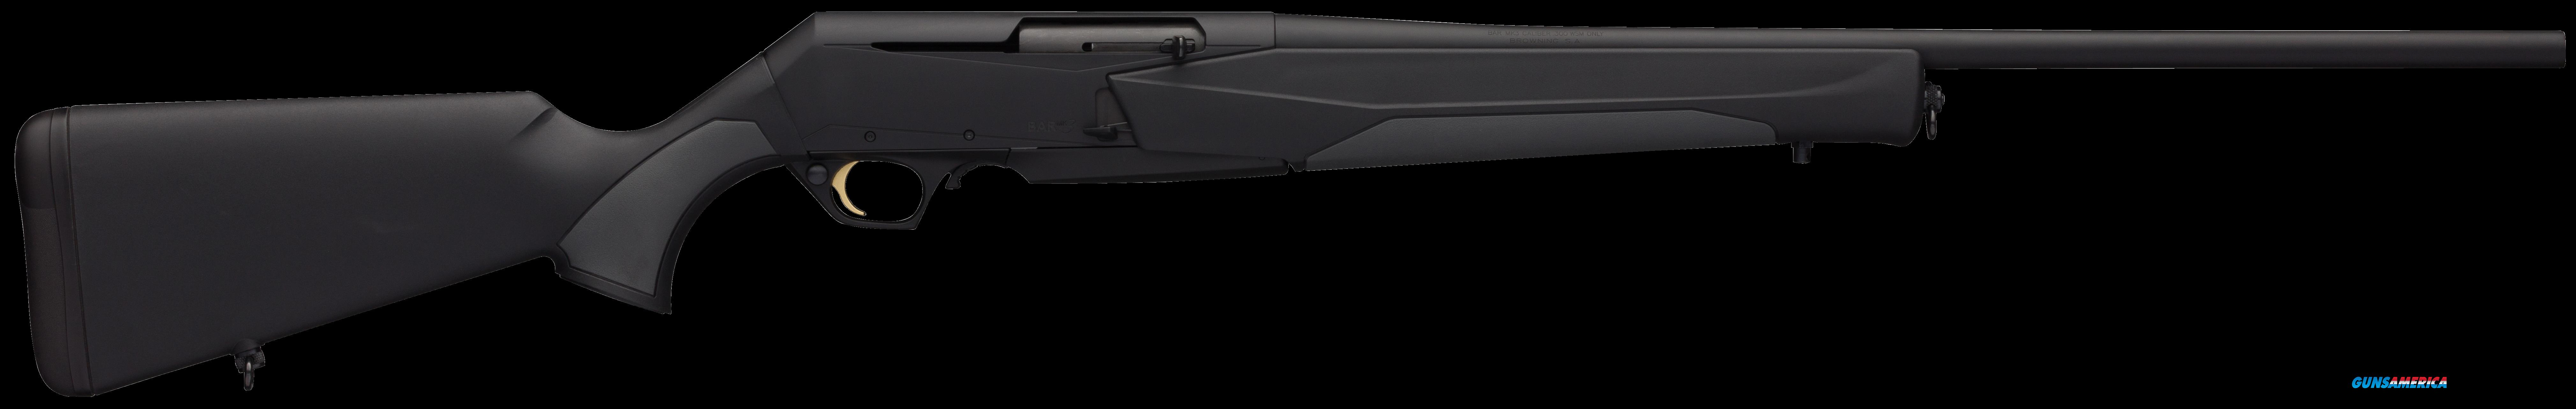 "Browning 031048211 BAR MK3 Stalker Semi-Automatic 243 Win 22"" 4+1 Synthetic Black Stk Blued  Guns > Rifles > Browning Rifles > Semi Auto > Hunting"